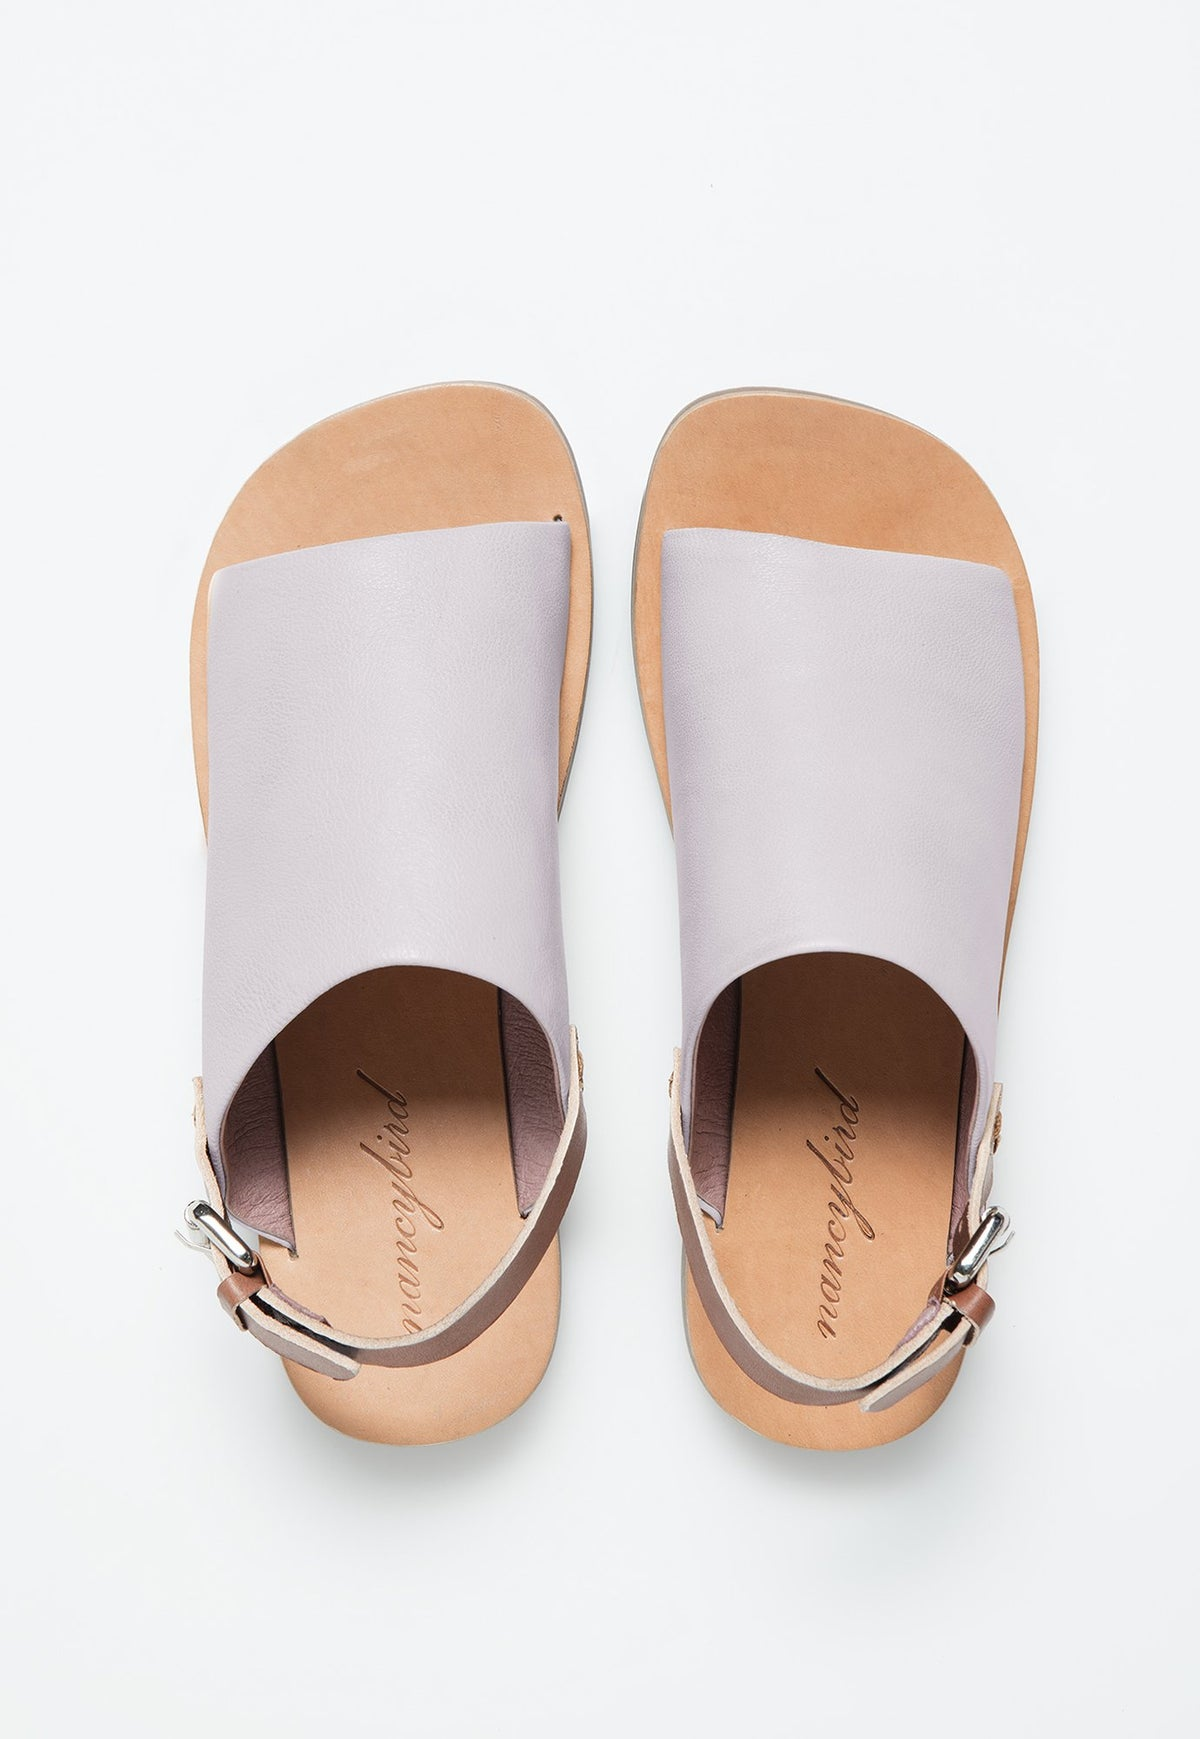 Mason Sandals - Porcelain